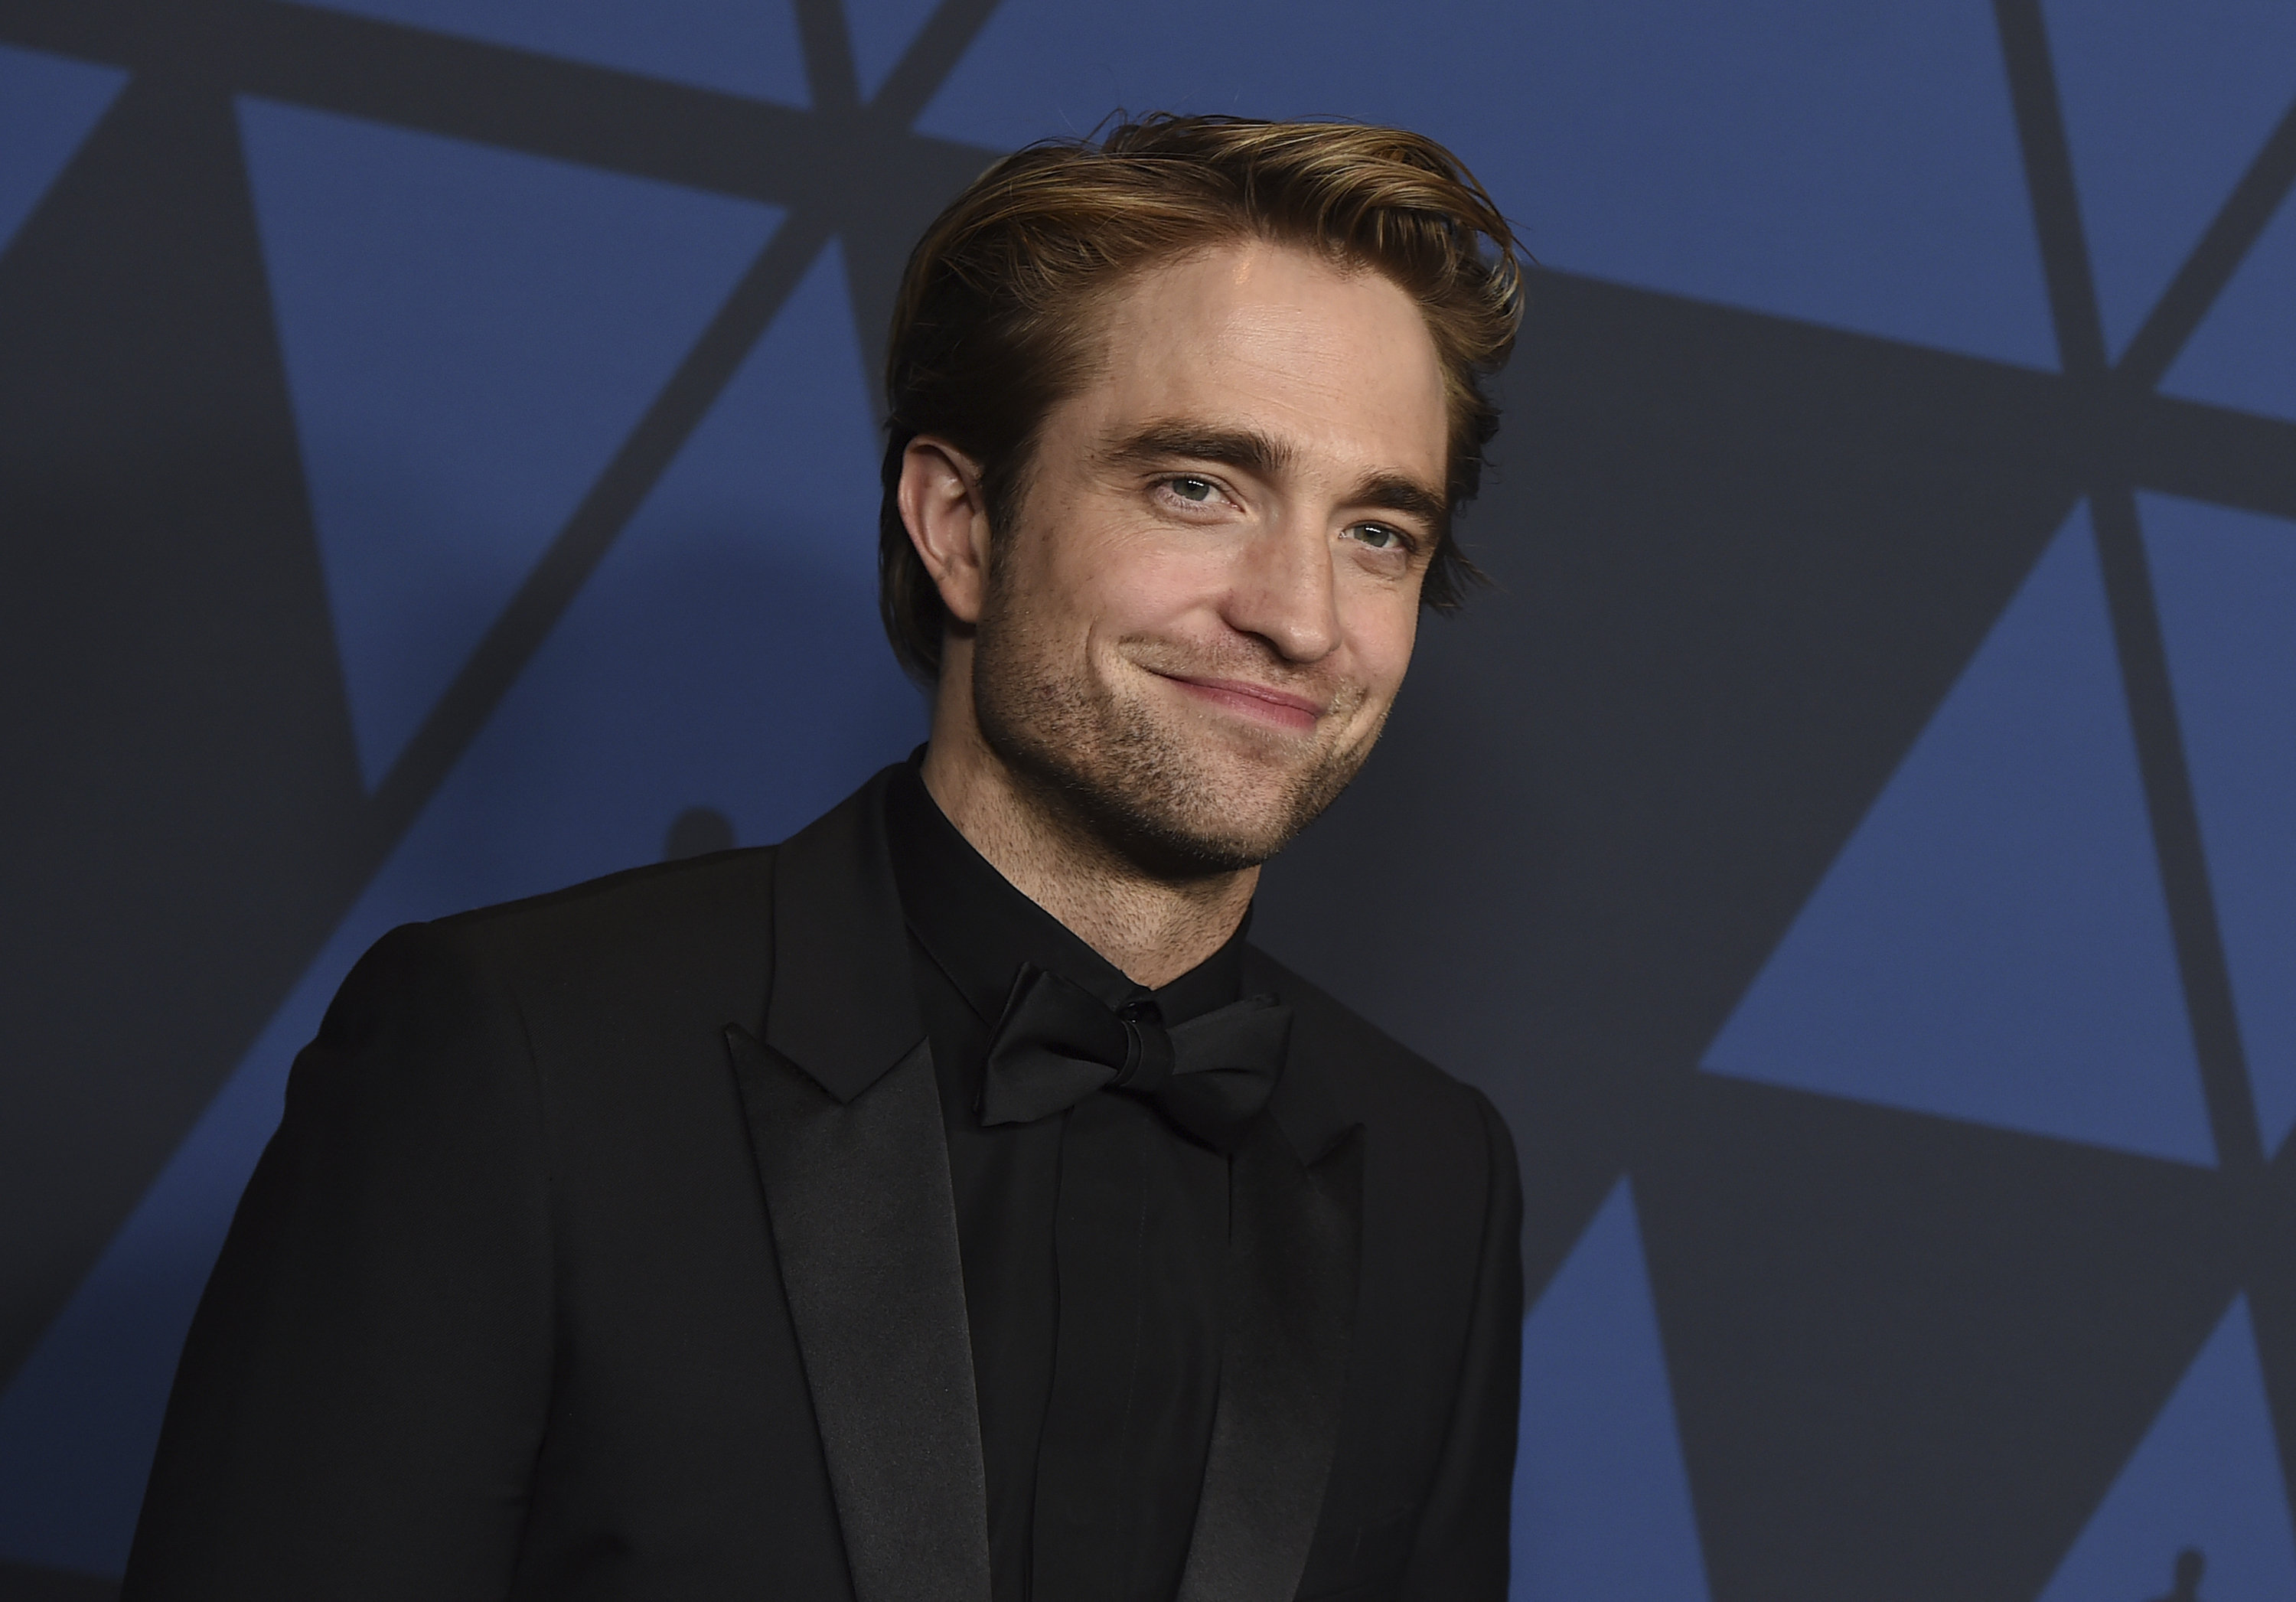 Robert Pattinson Tried To Trick Christopher Nolan While Filming 'Tenet' So He Could Audition For 'Batman'